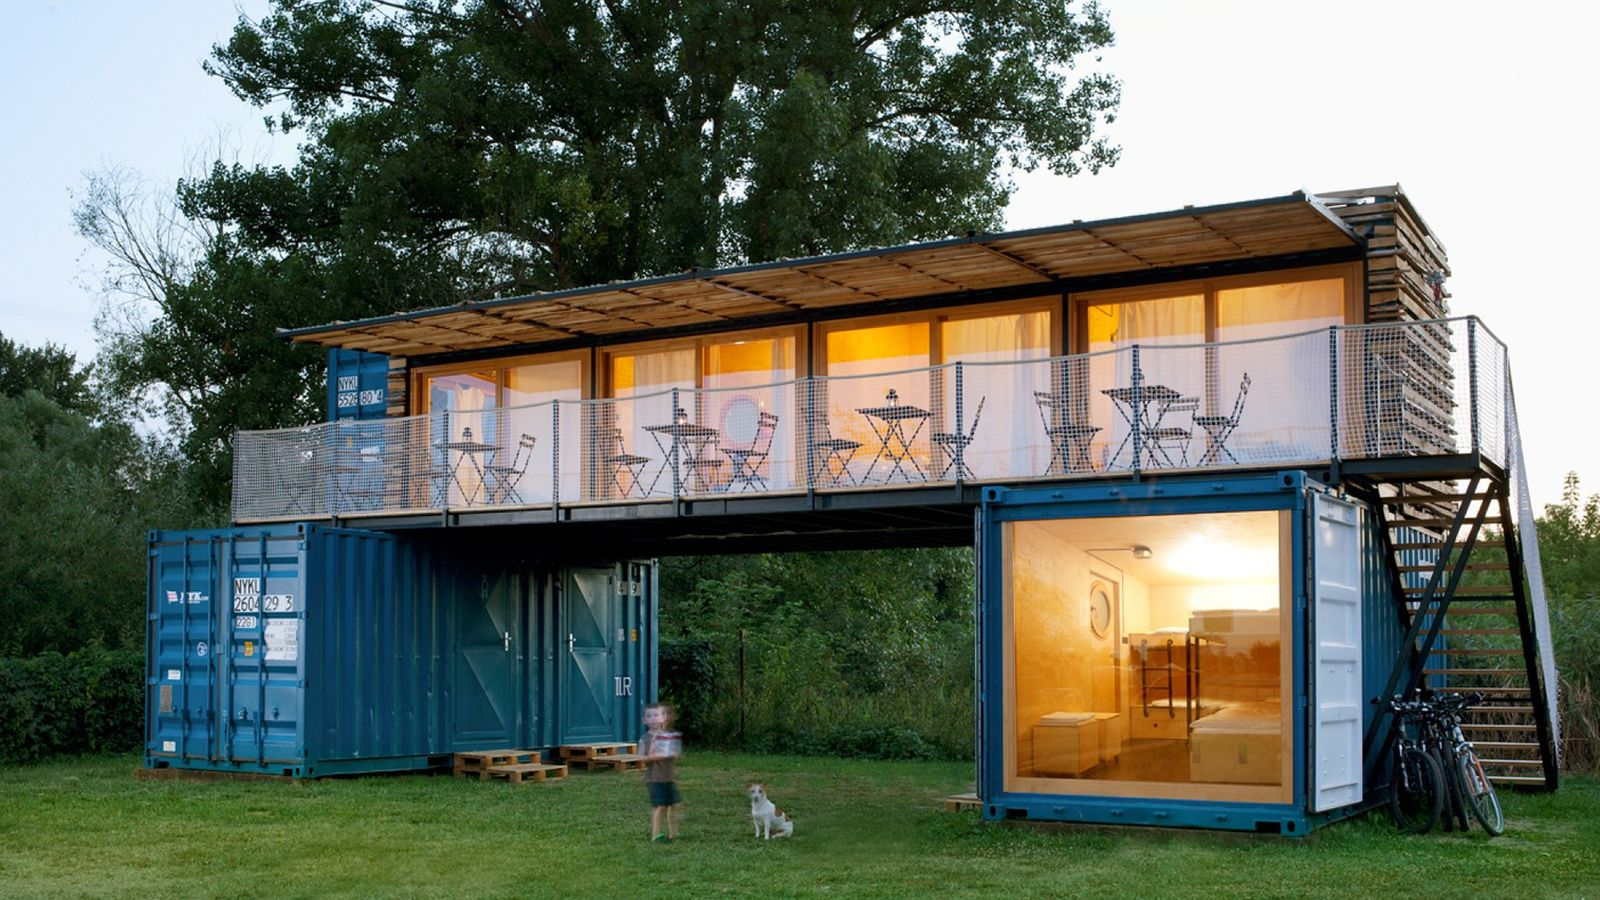 Shipping container hotel offers eco friendly getaway for - Container homes chicago ...